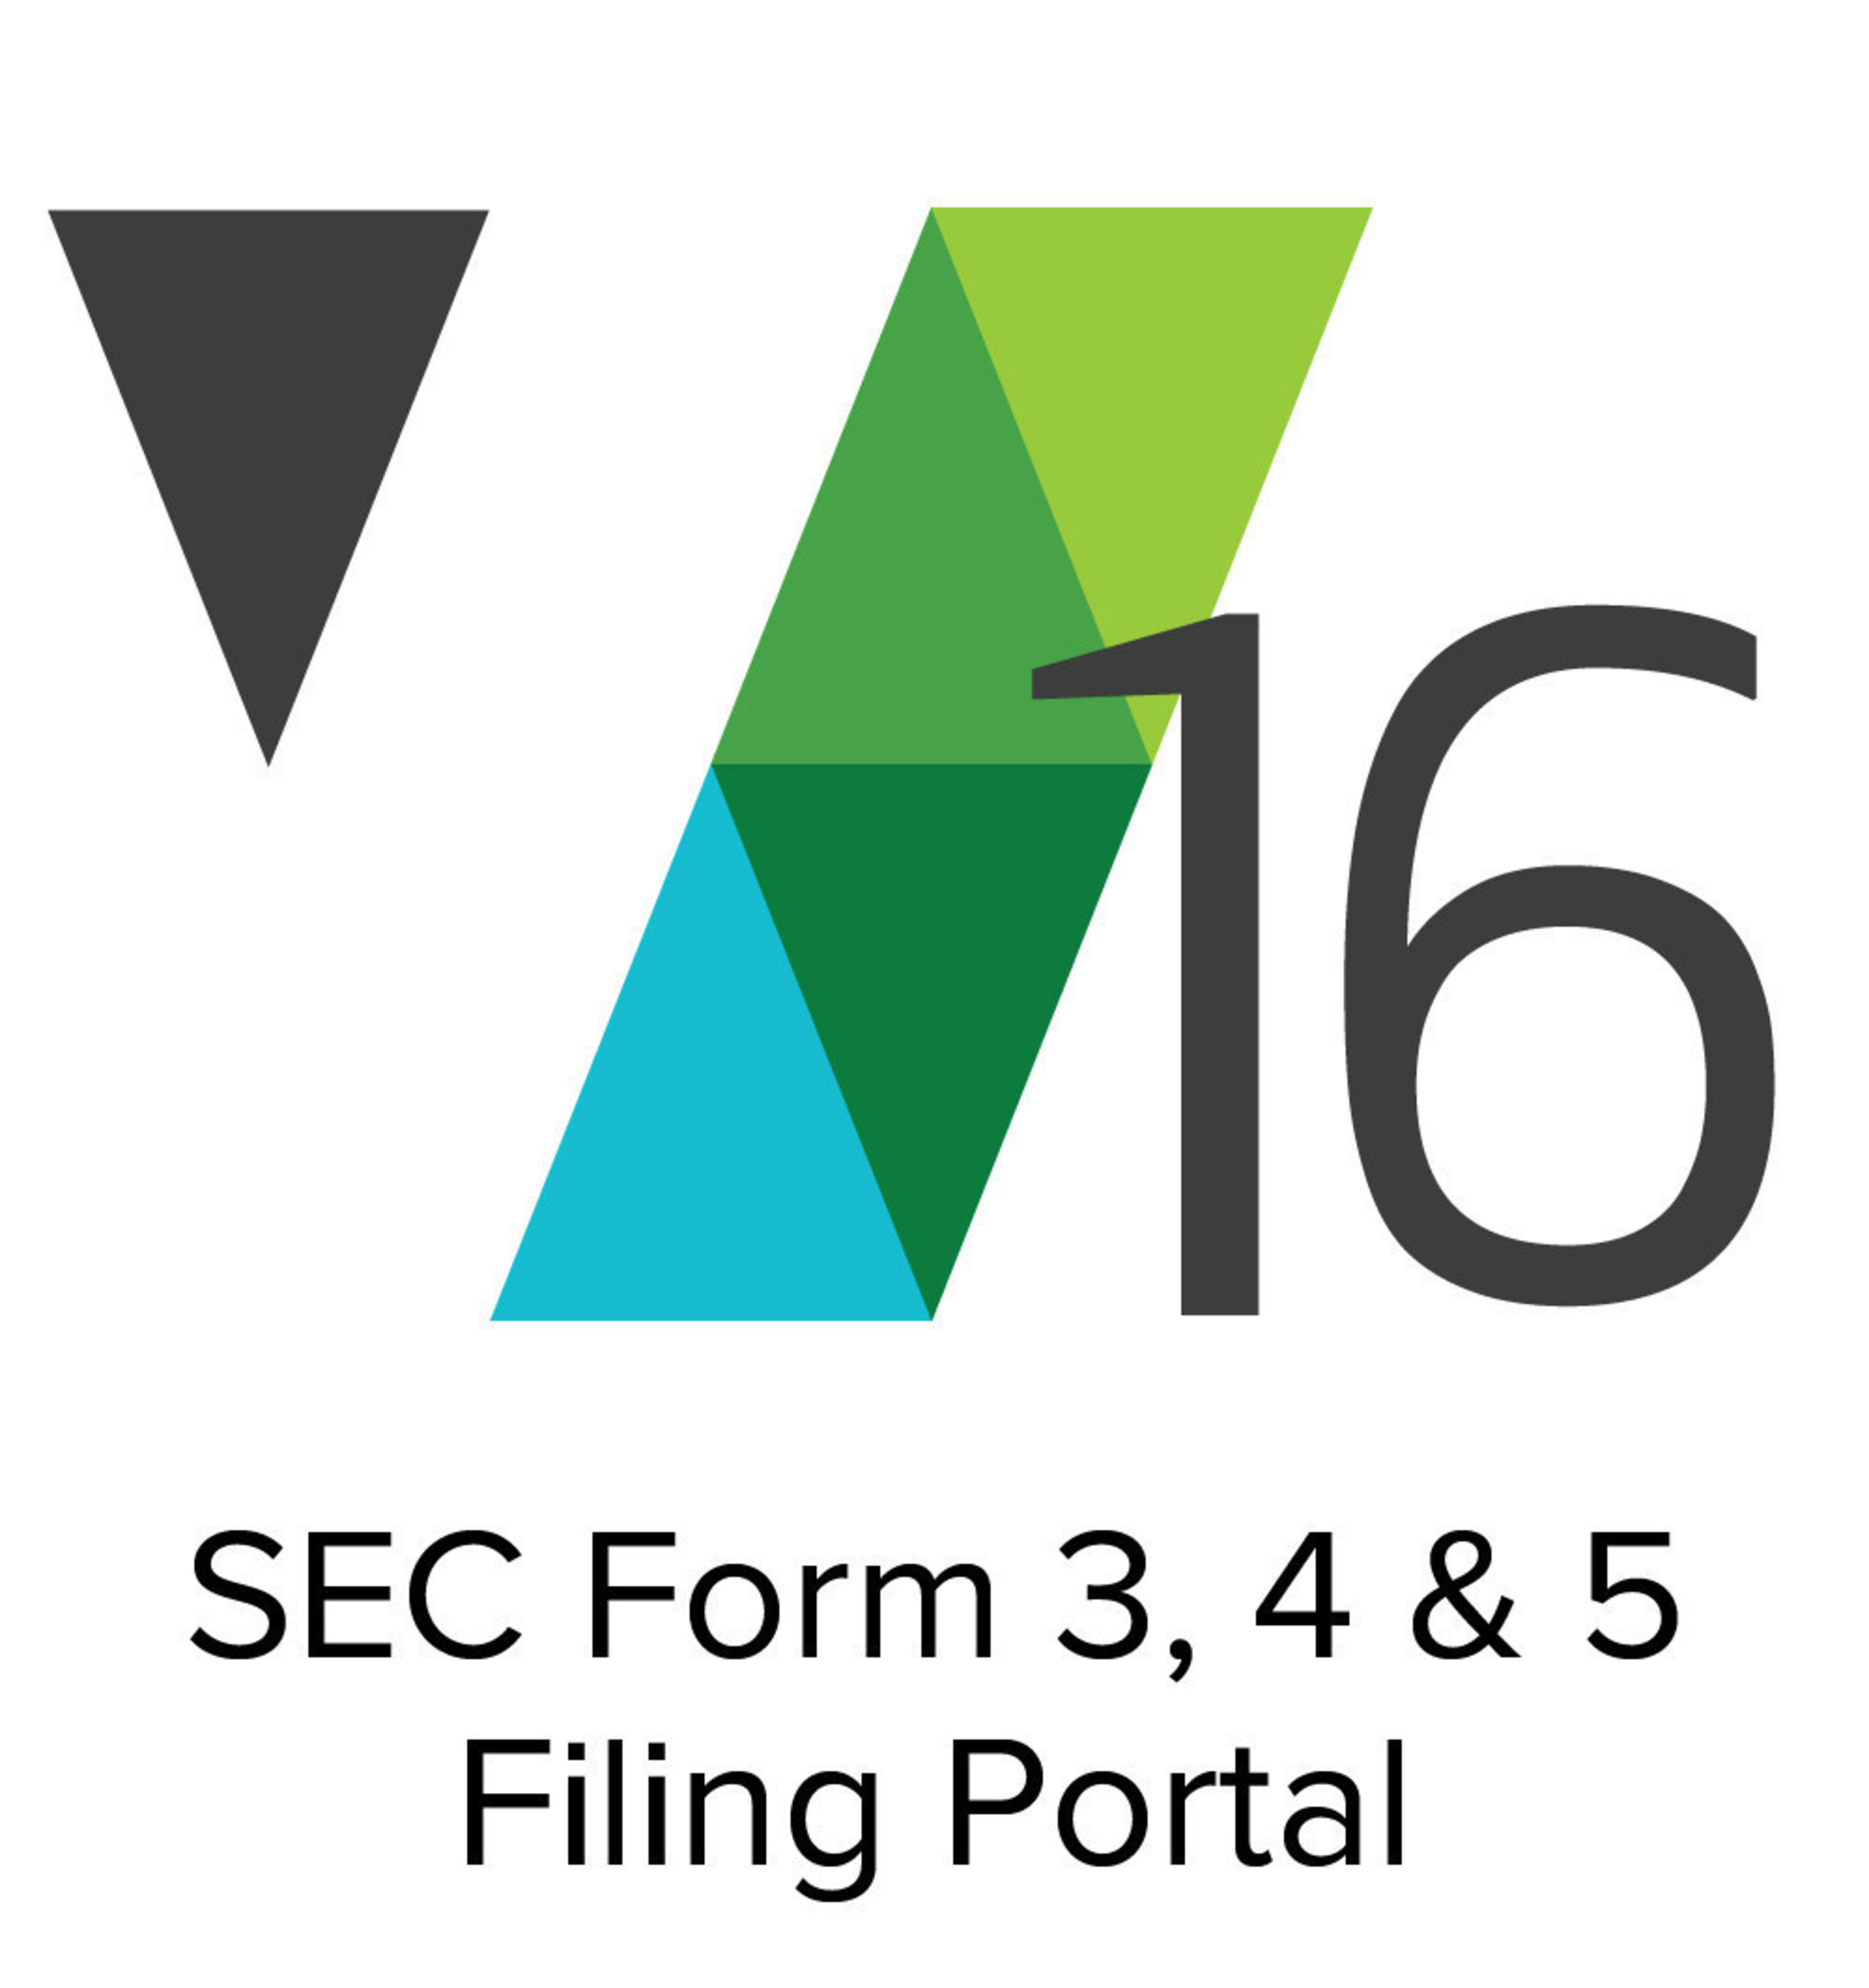 Vintage16 Reduces Cost and Complexity of SEC Section 16 Compliance for Individuals, Companies and Law Firms